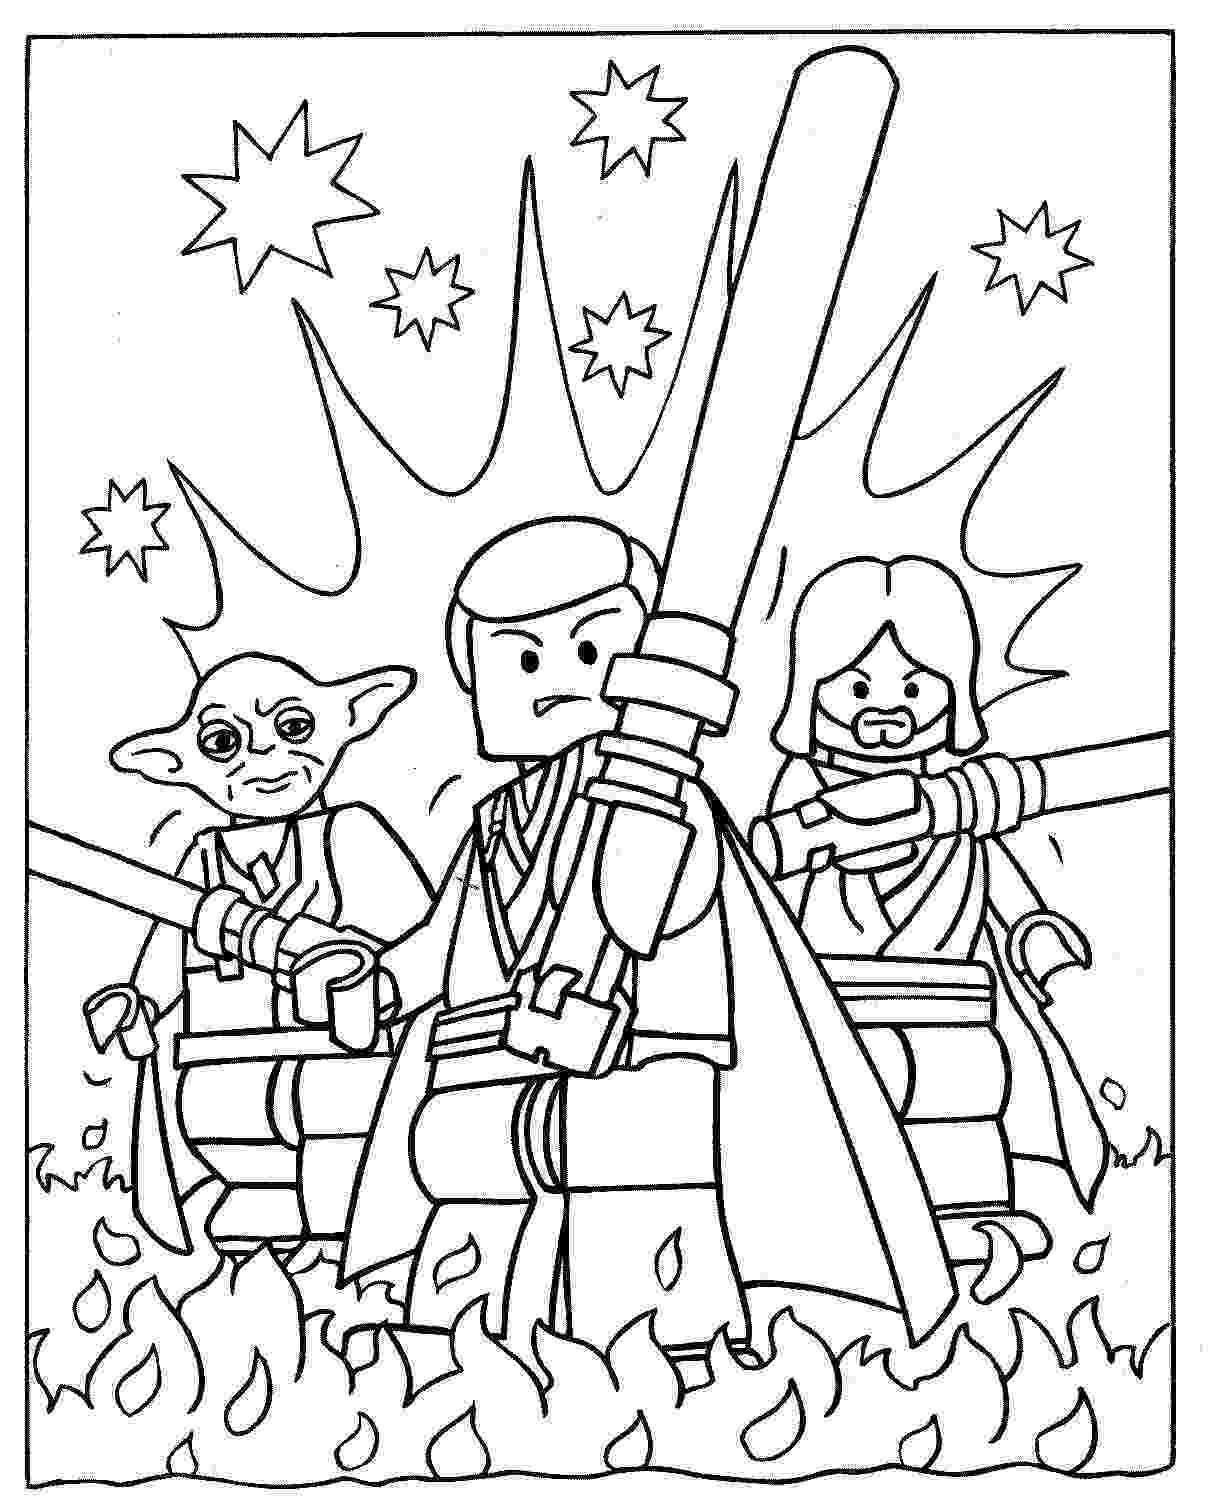 starwars colouring top 25 free printable star wars coloring pages online colouring starwars